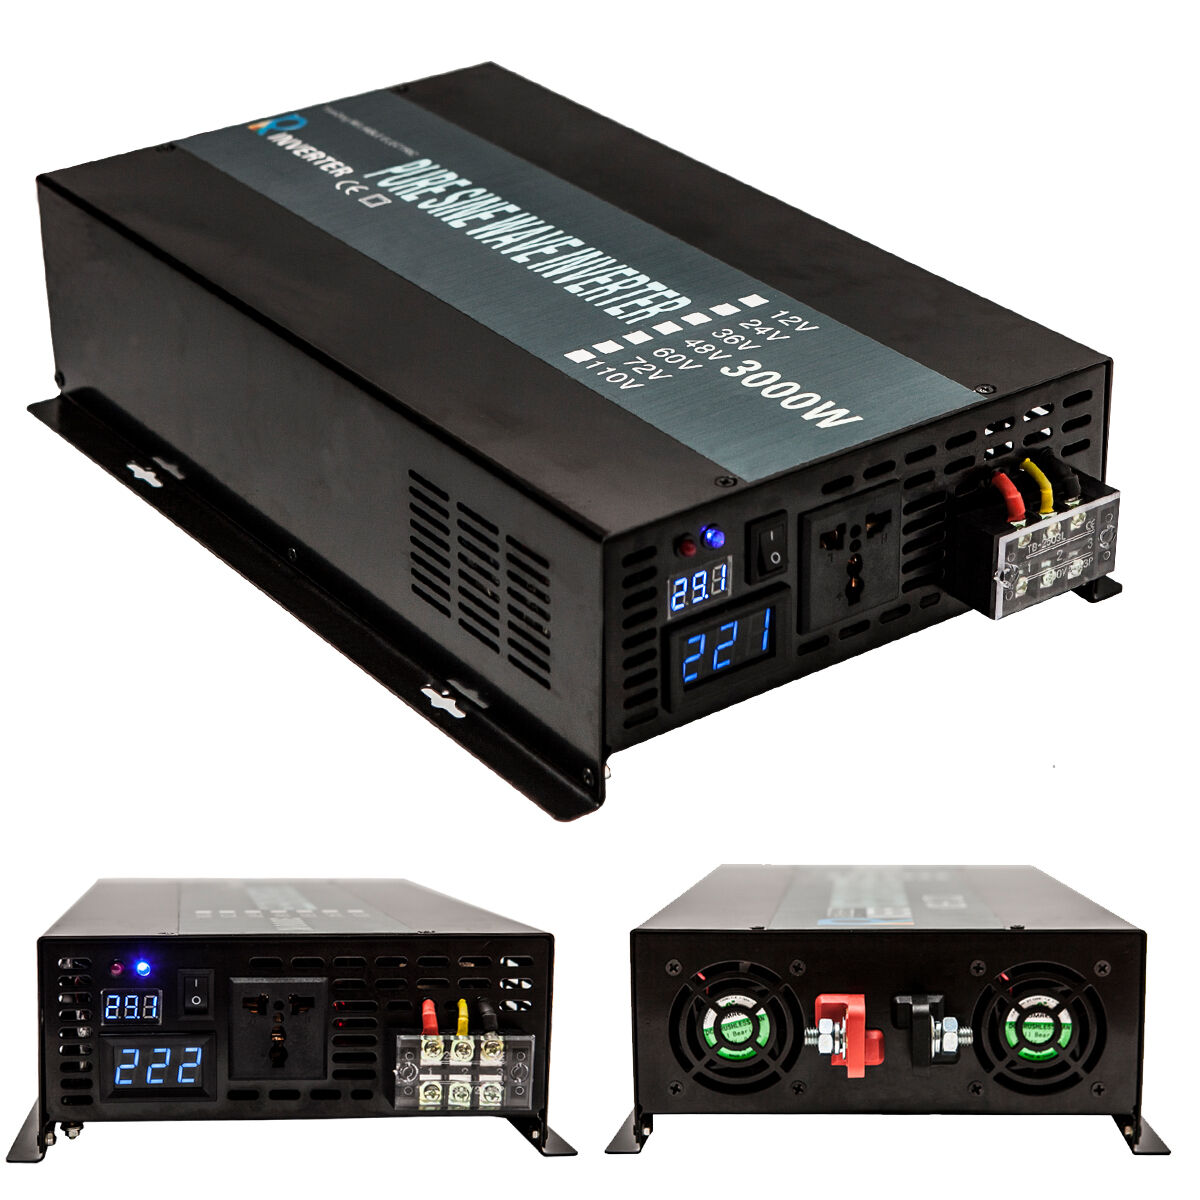 3000 Watt Car Power Inverter 12 24 Volt Dc To 120 220 Ac Pure Vdc Vac Circuit Norton Secured Powered By Verisign